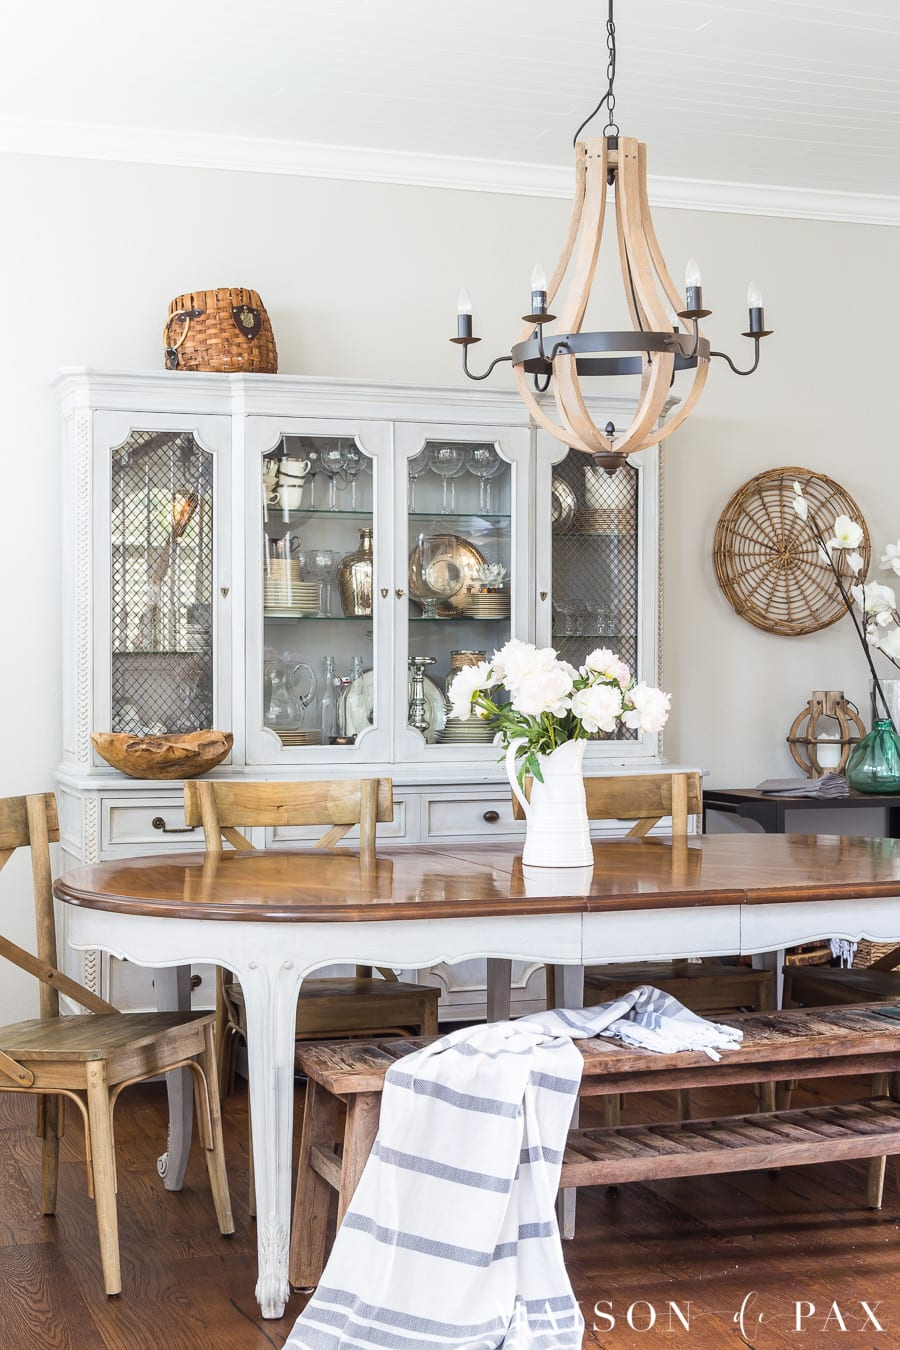 Tips to create a French Country dining room look. #frenchcountry #neutrals #diningroom #decorating #frenchfarmhouse #frenchdecor #diningroomdecor